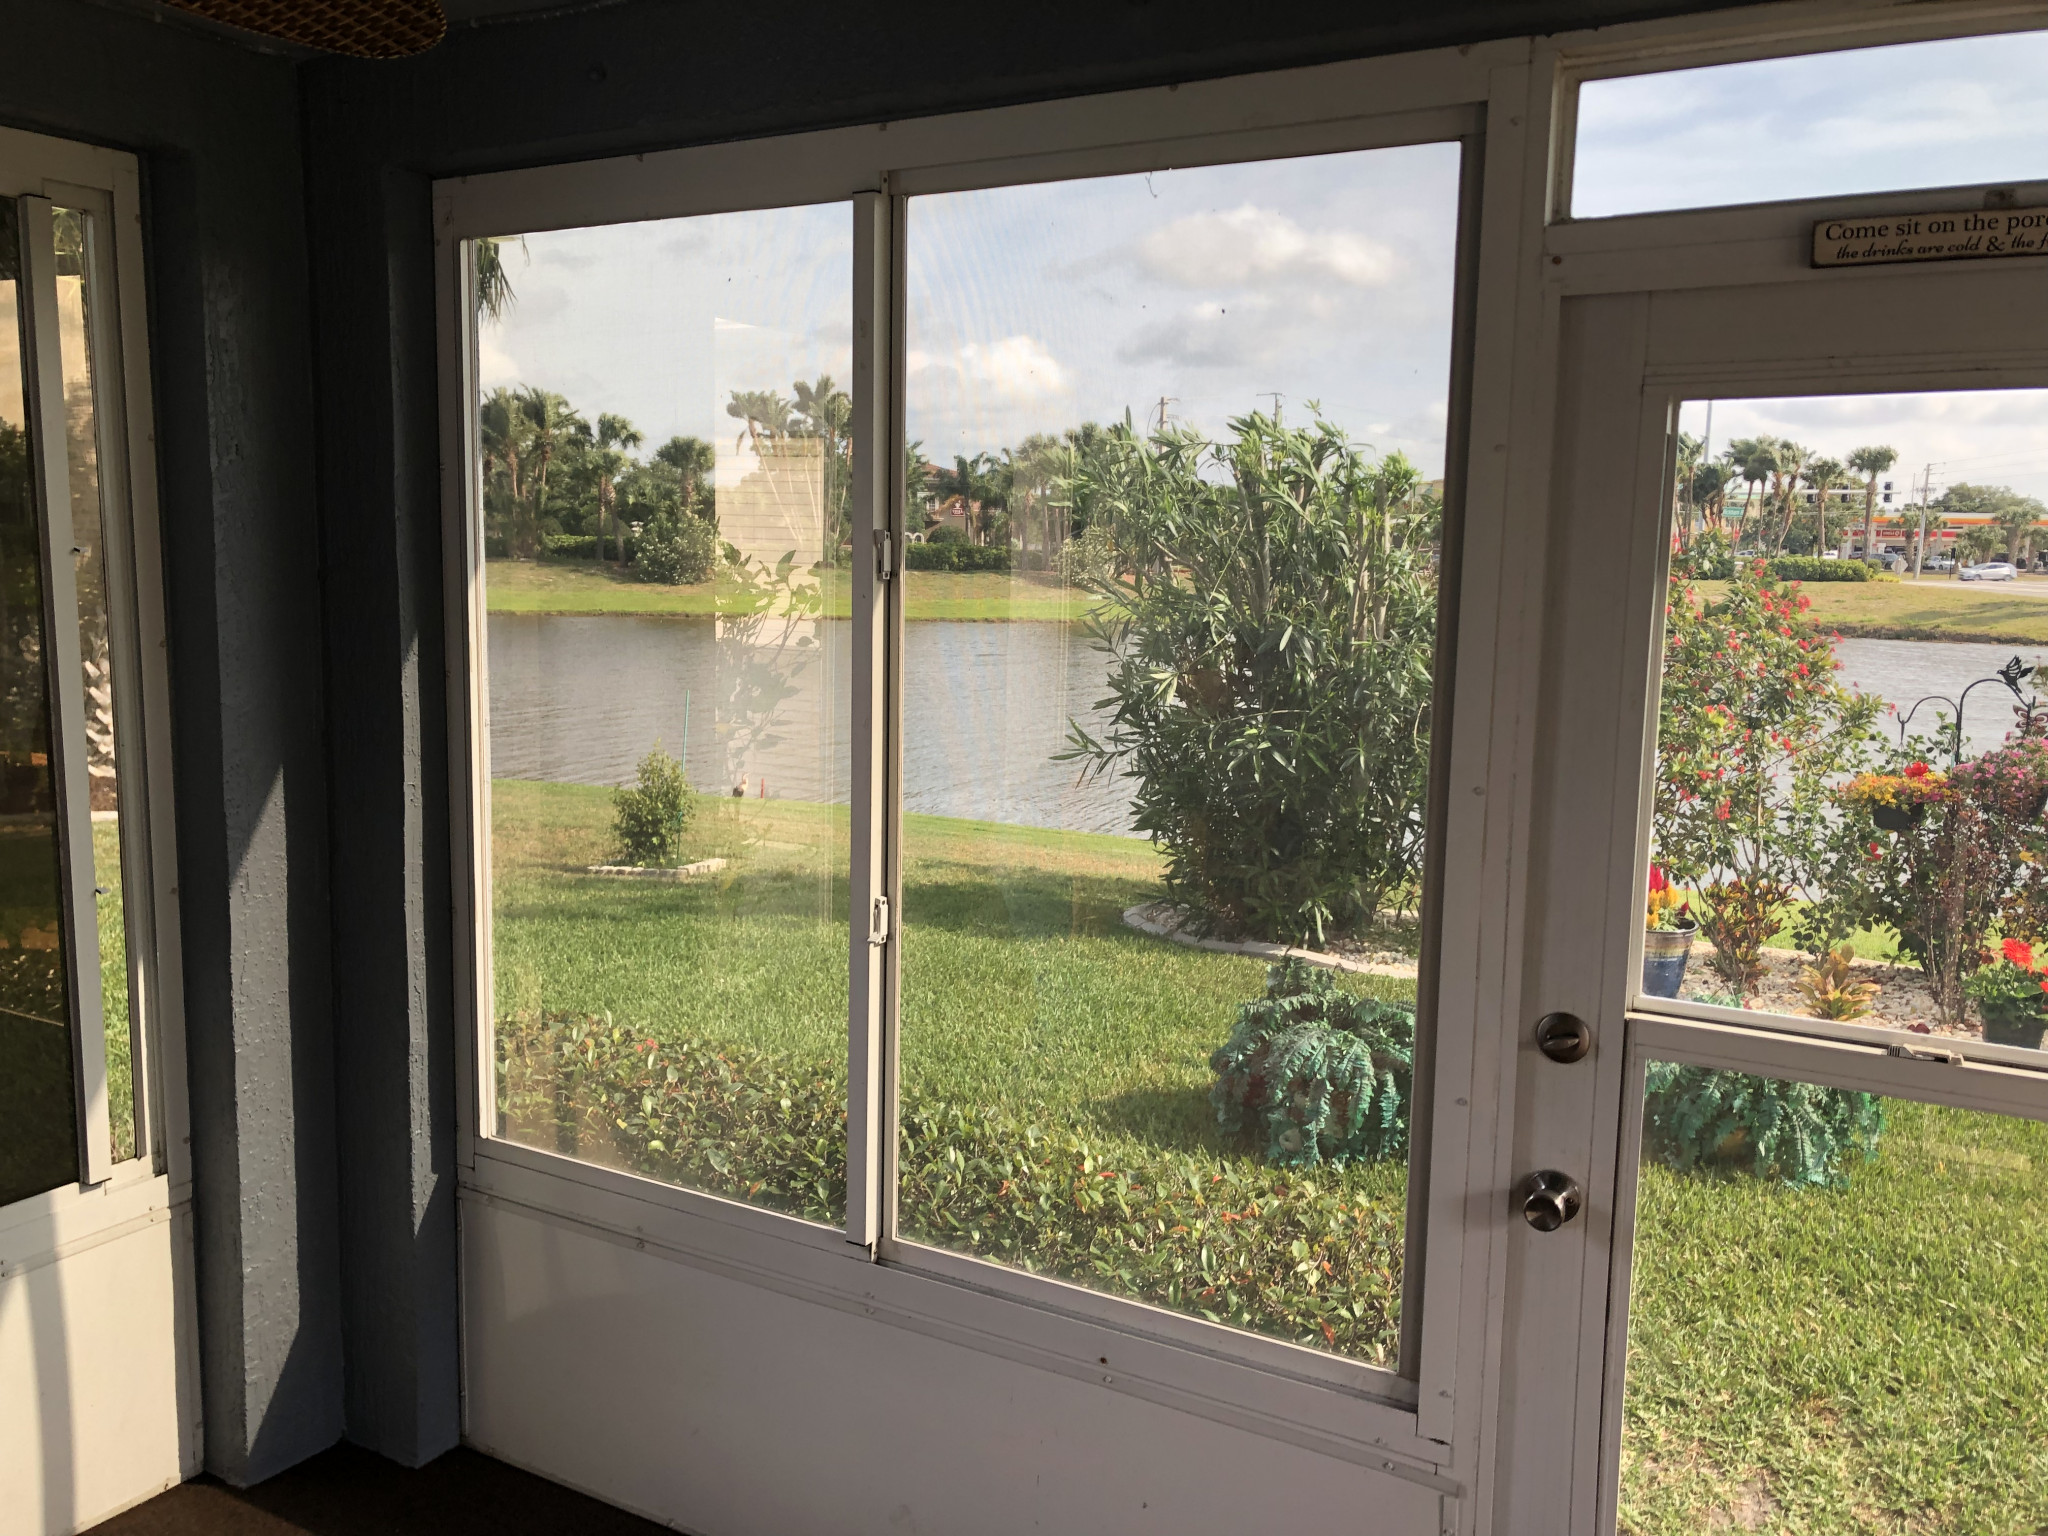 Window Tint Reduces Glare And Heat For Your Home